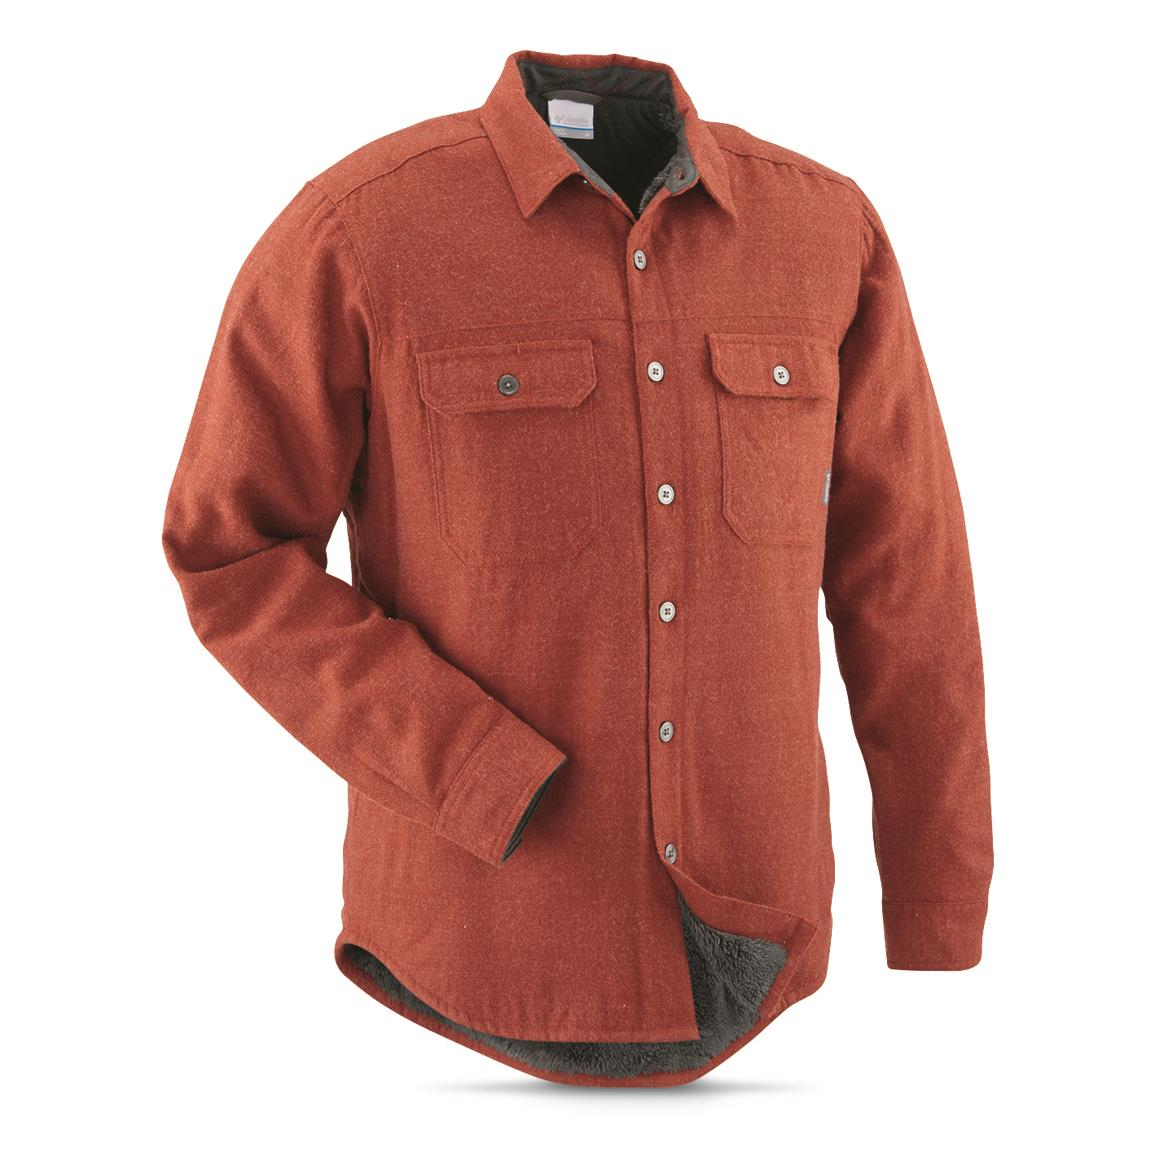 Columbia Men's Windward III Overshirt, Rusty